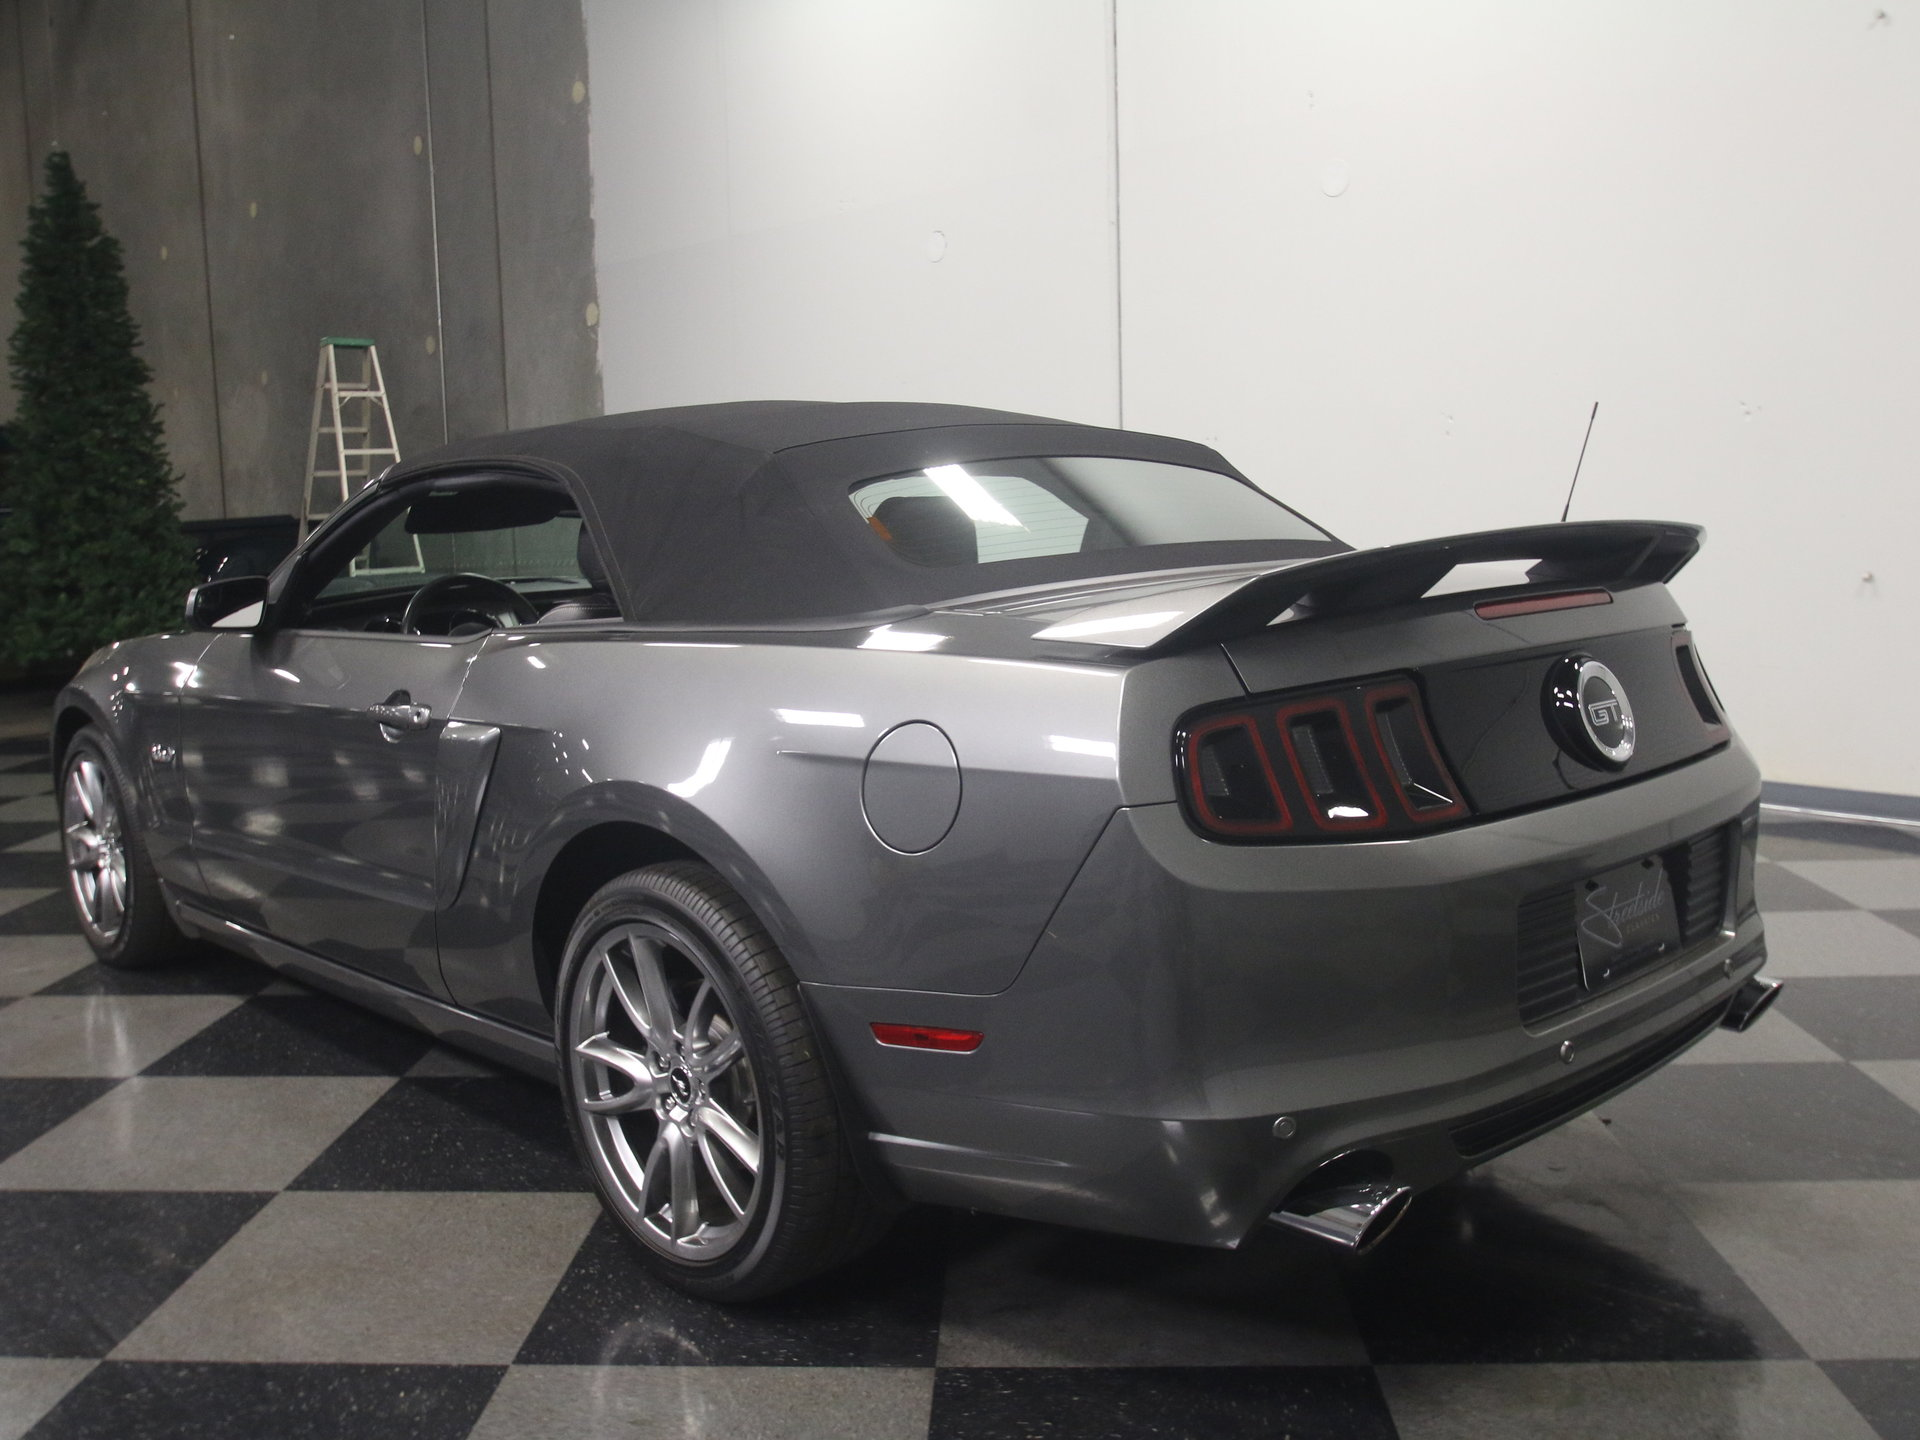 2014 ford mustang gt convertible for sale 76936 mcg. Black Bedroom Furniture Sets. Home Design Ideas